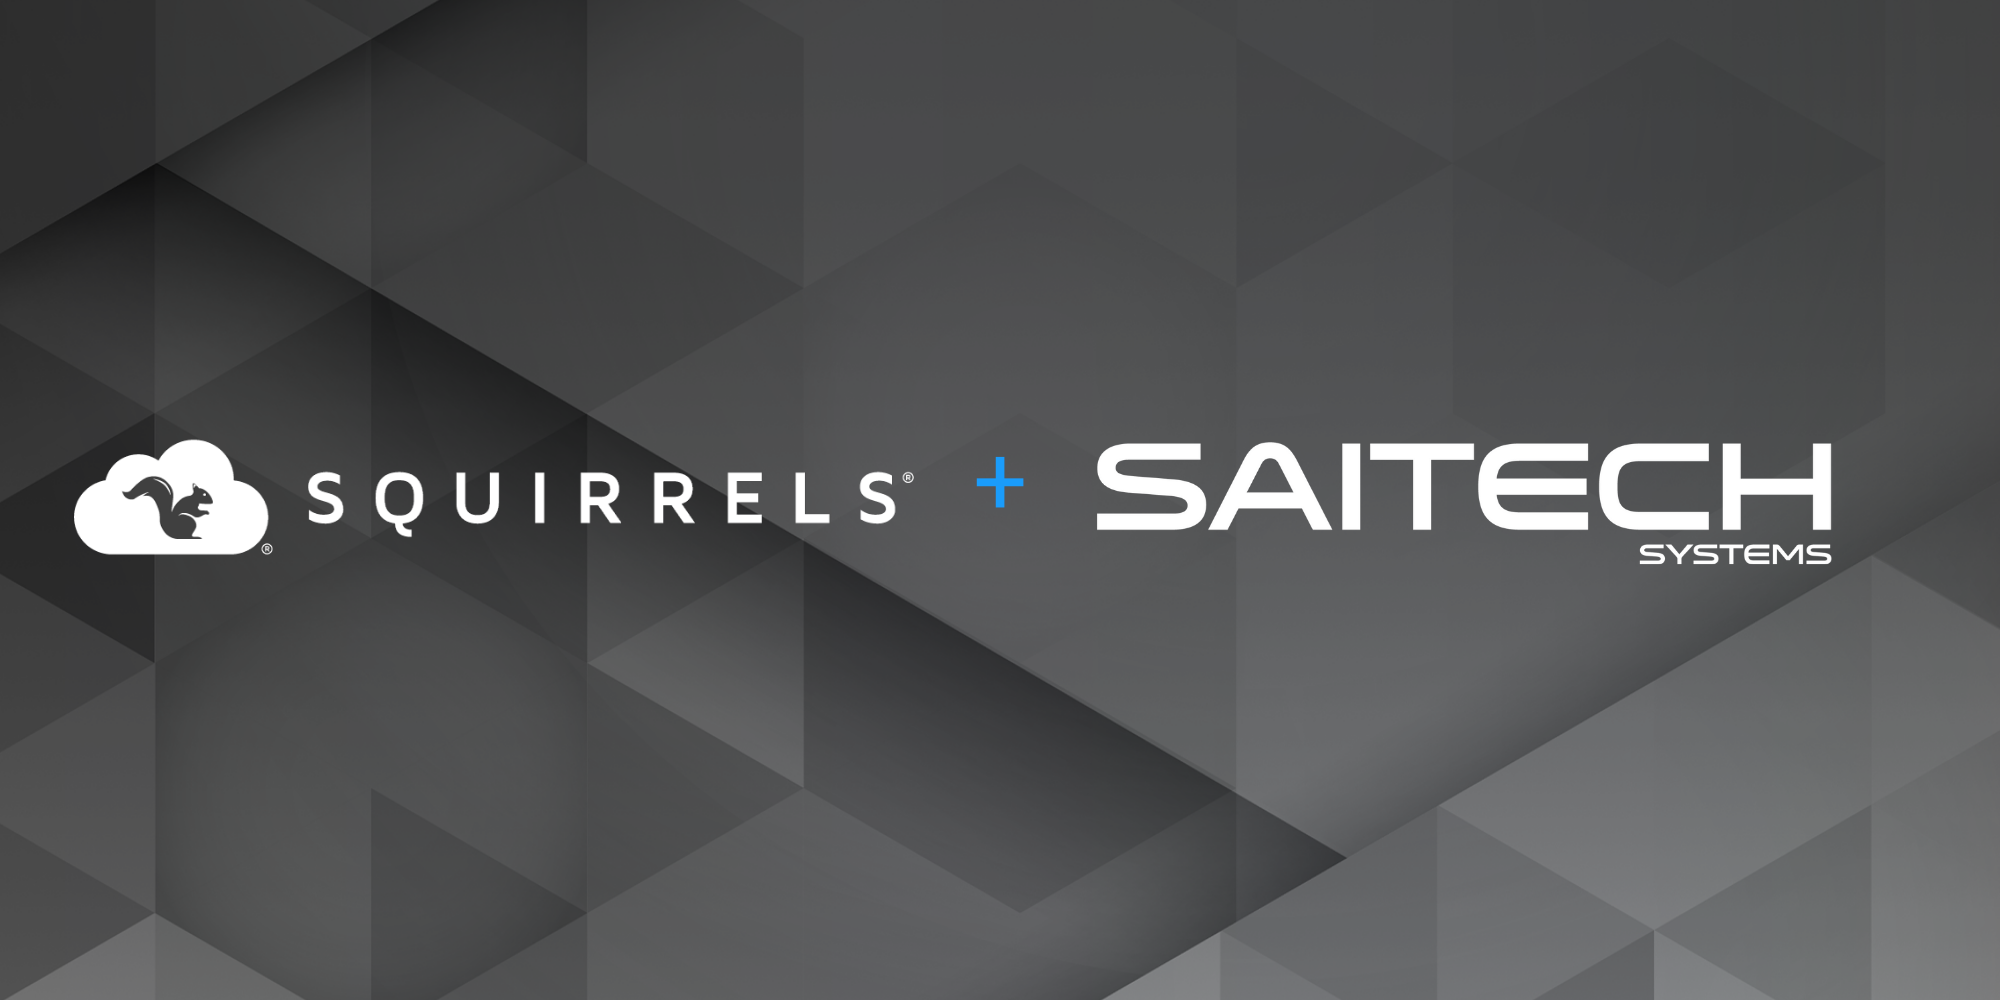 Squirrels and SAITECH Systems names on black polygon background